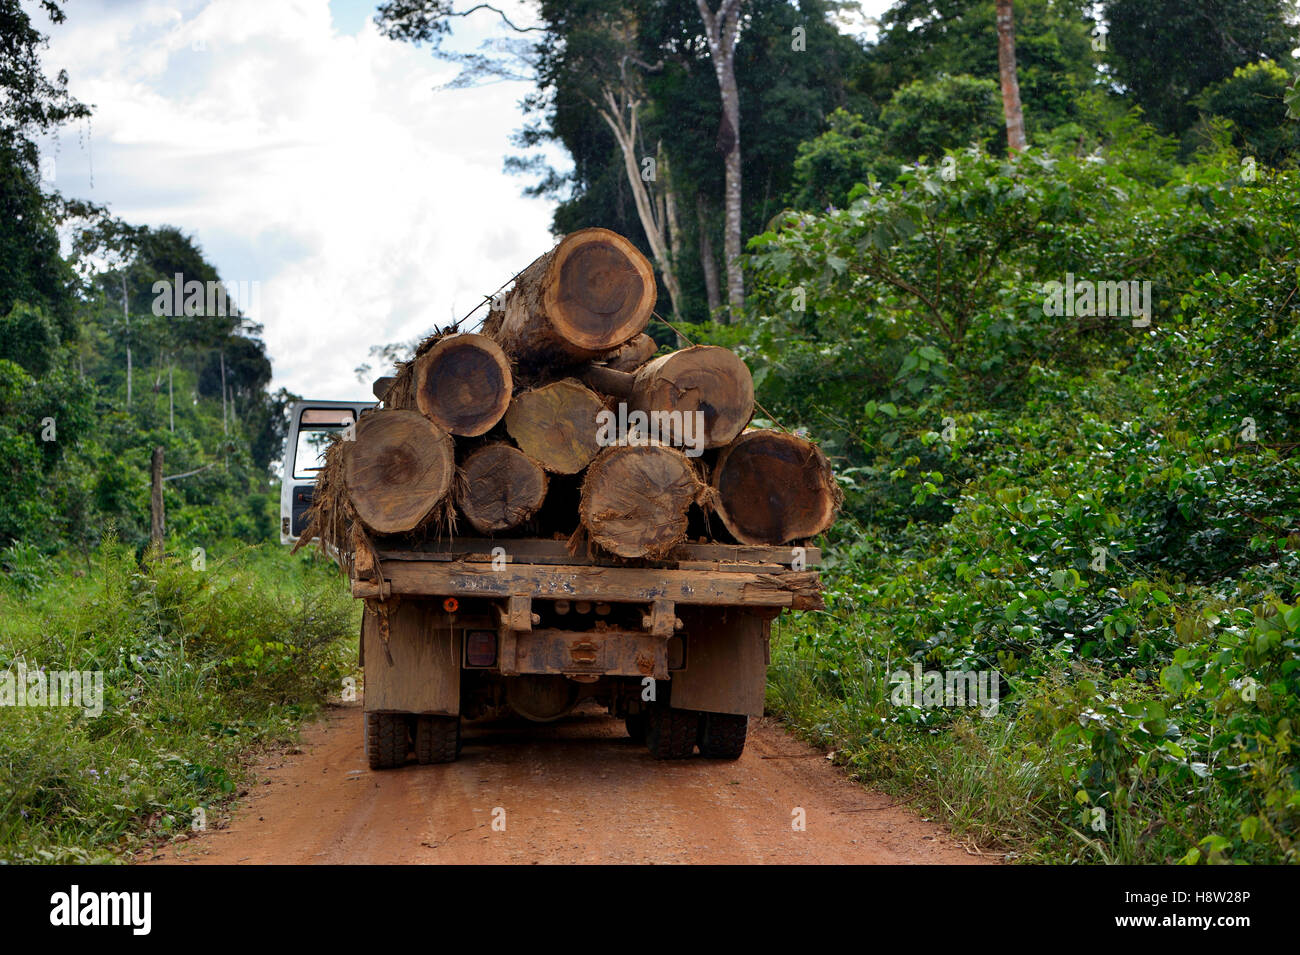 Trucks loaded with tree trunks, illegal logging, Amazon rainforest timber, Trairão District, Pará, Brazil - Stock Image